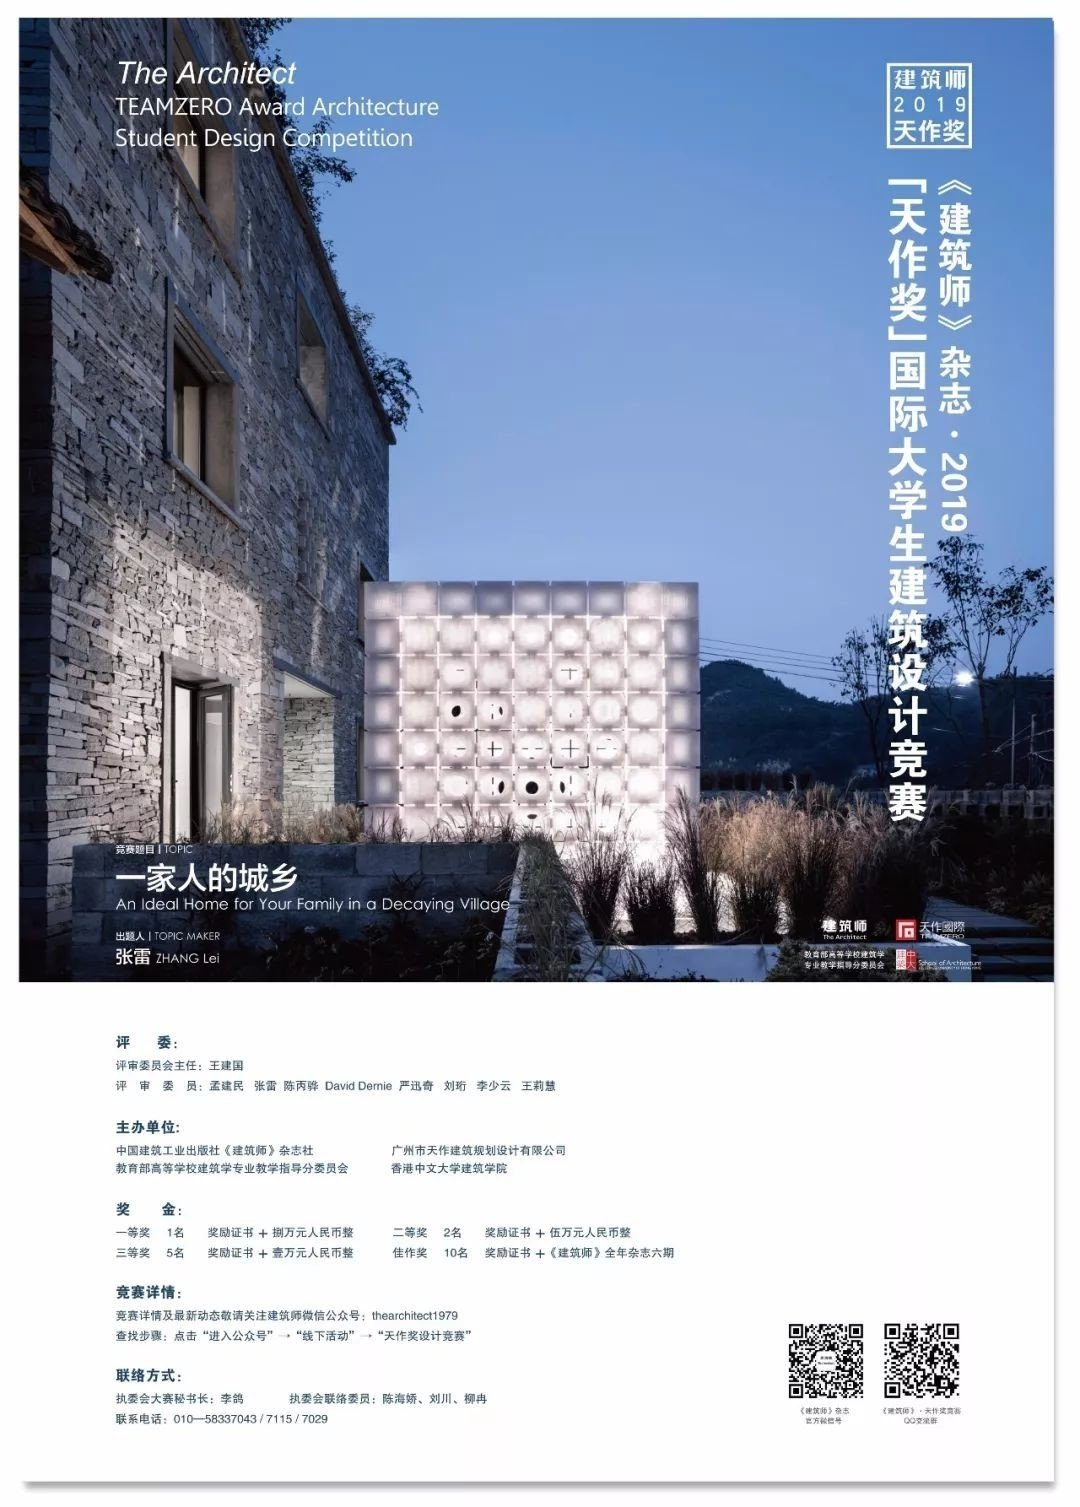 2019 Tianzuo Award International University Student Architectural Design Competition